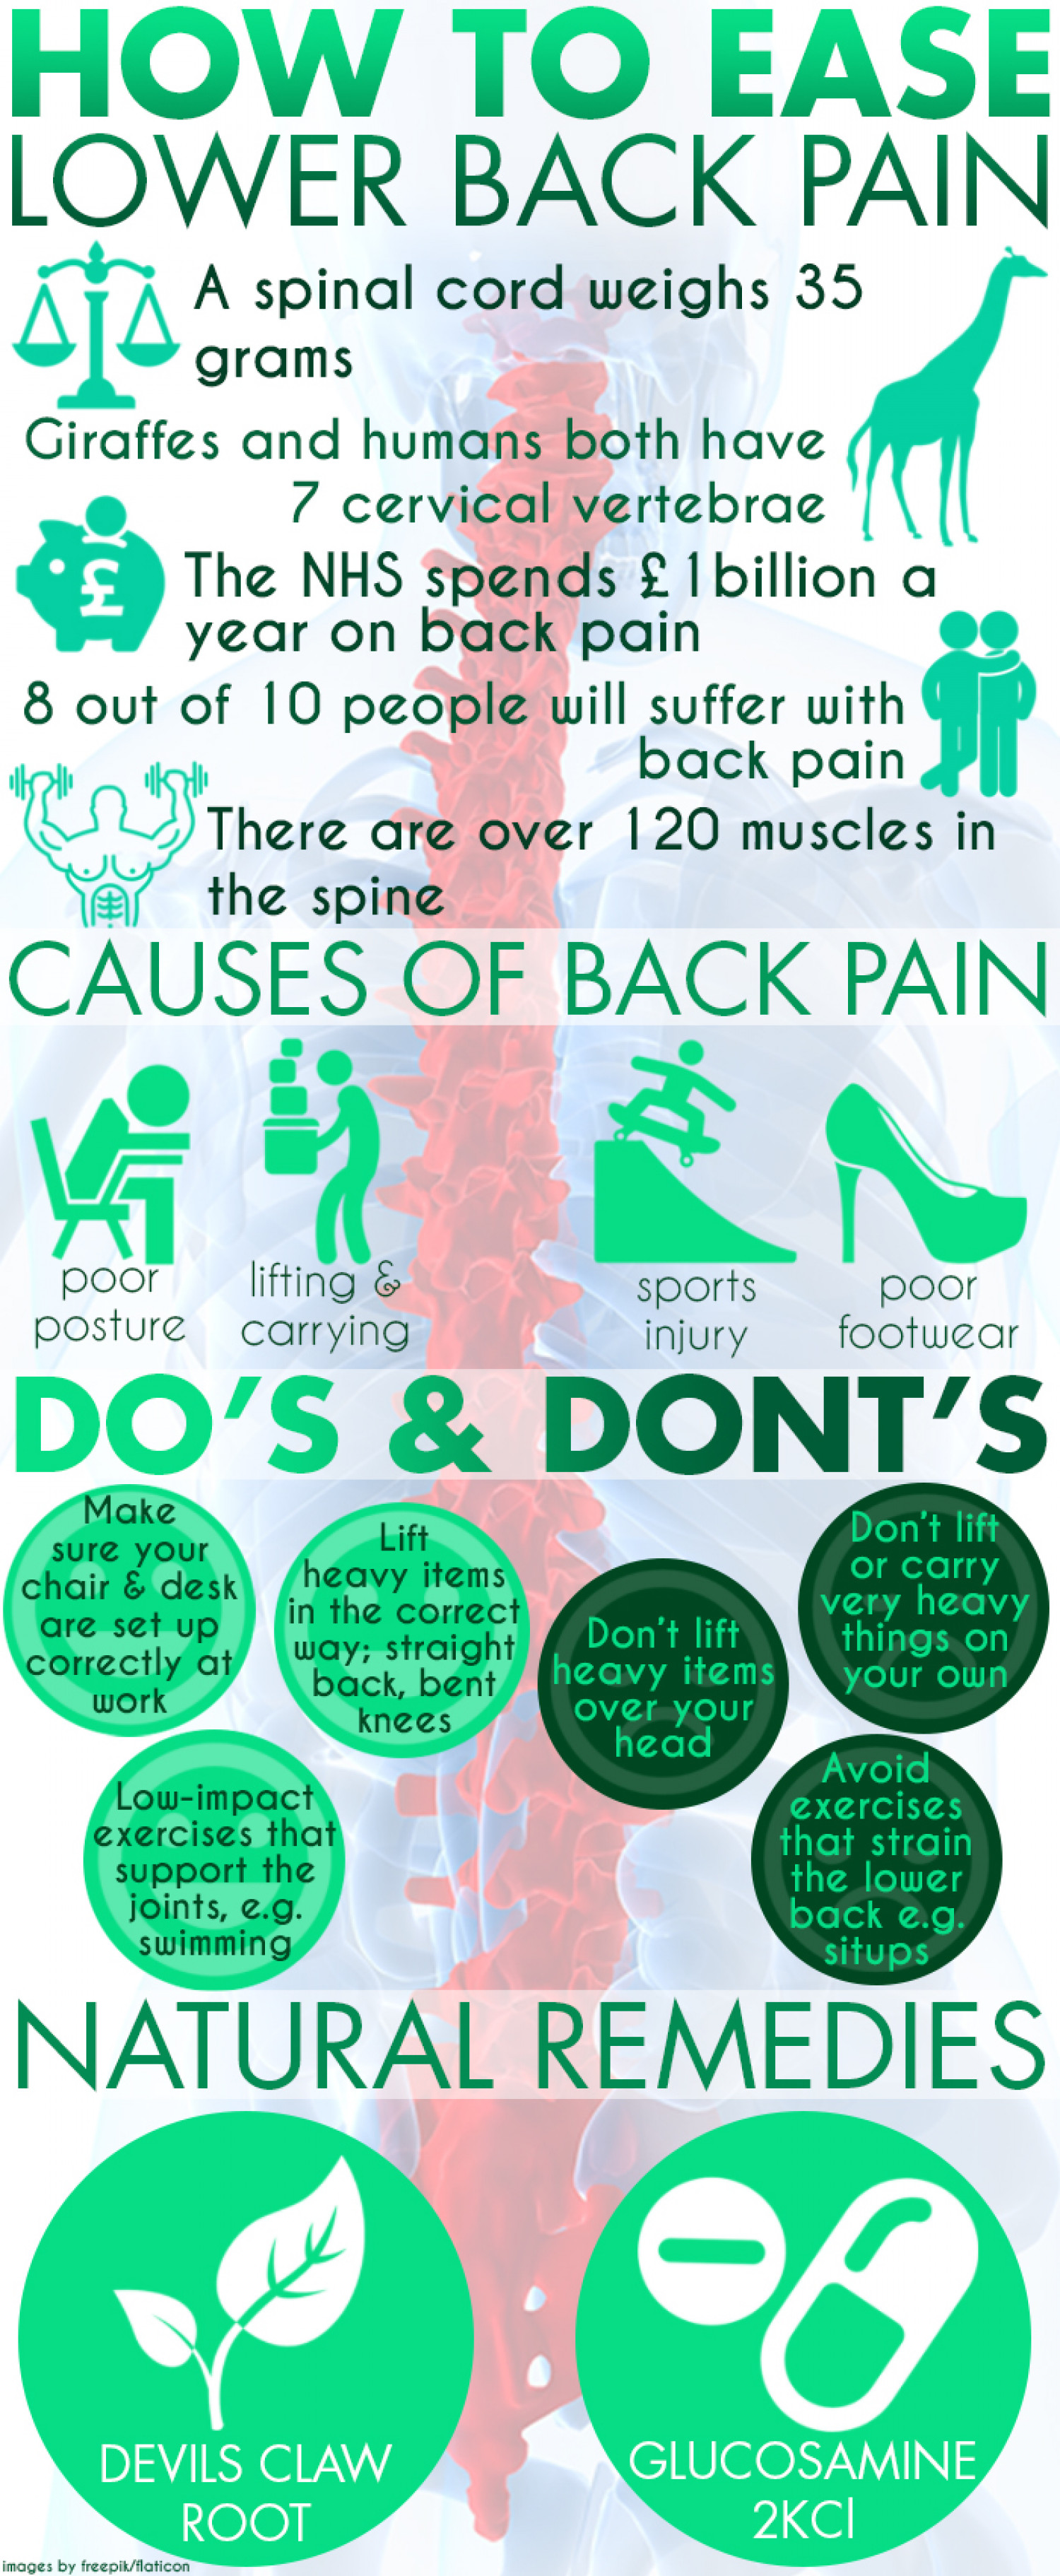 how to help lower back pain at work